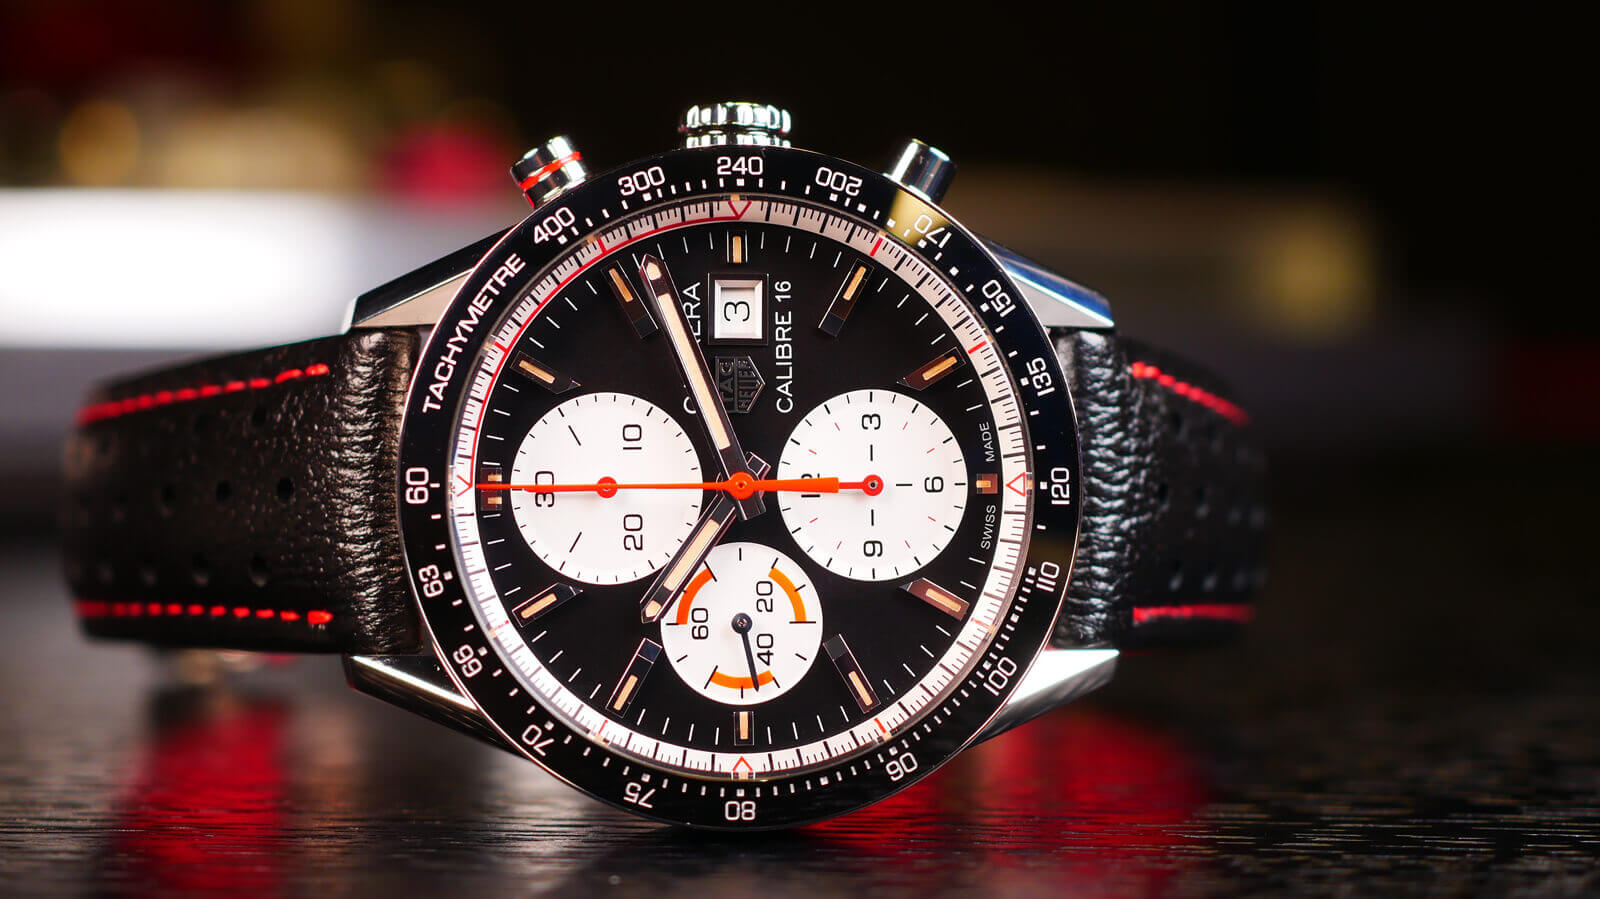 TAG Heuer Carrera Calibre 16 Chronograph - vintage-inspired chronograph with tri-compax dial